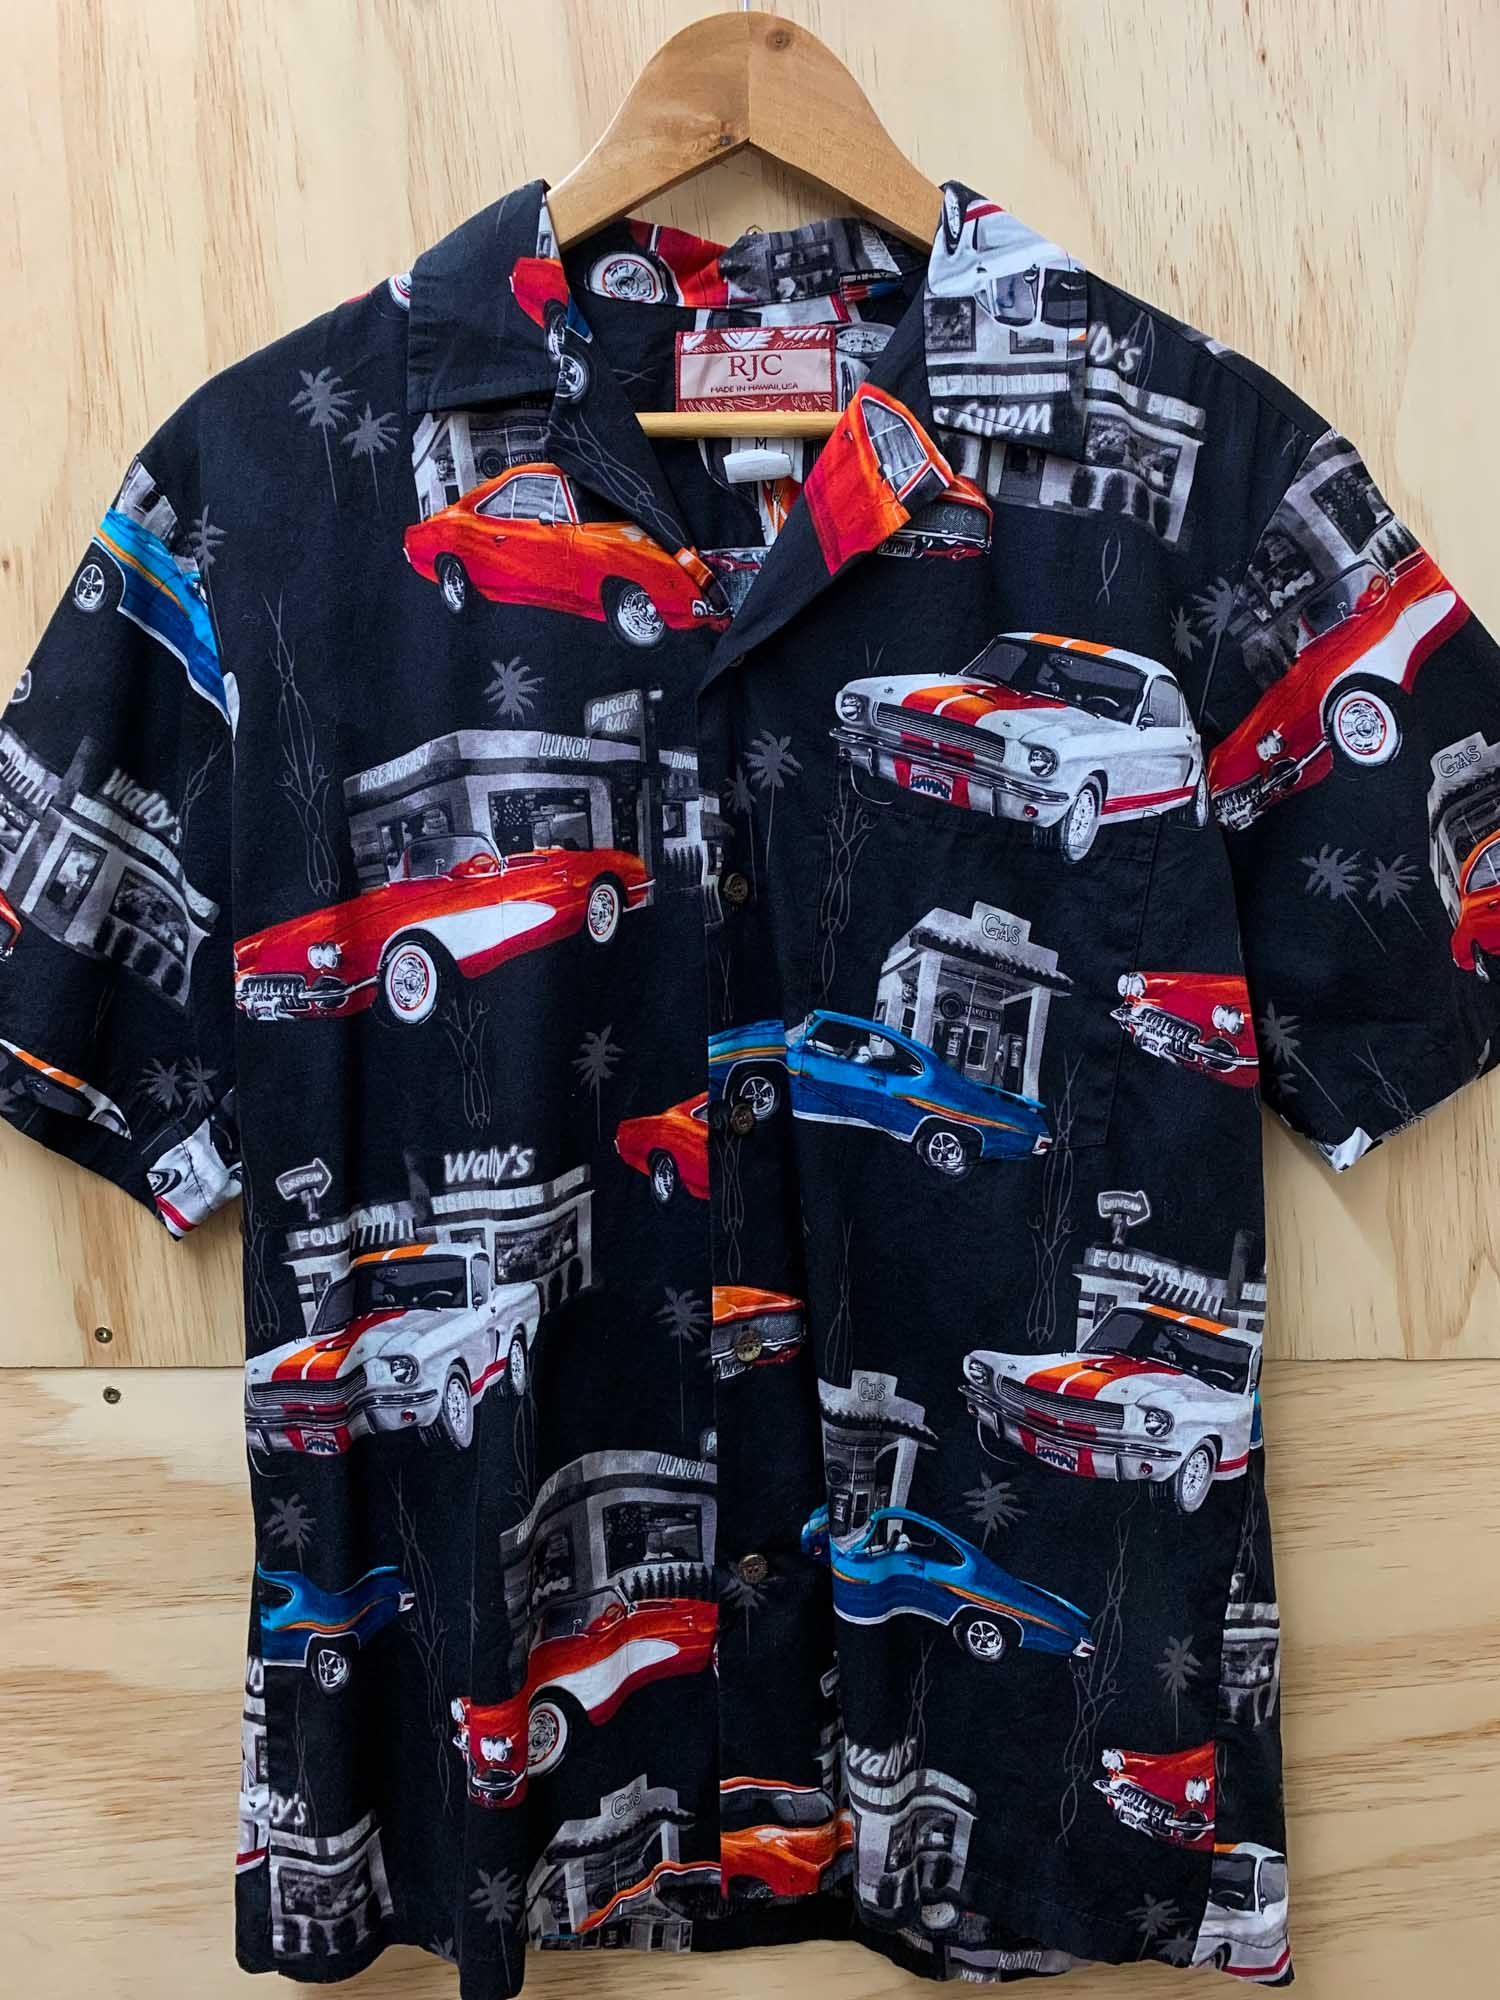 VINTAGE AMERICAN MUSCLE CAR SHIRT